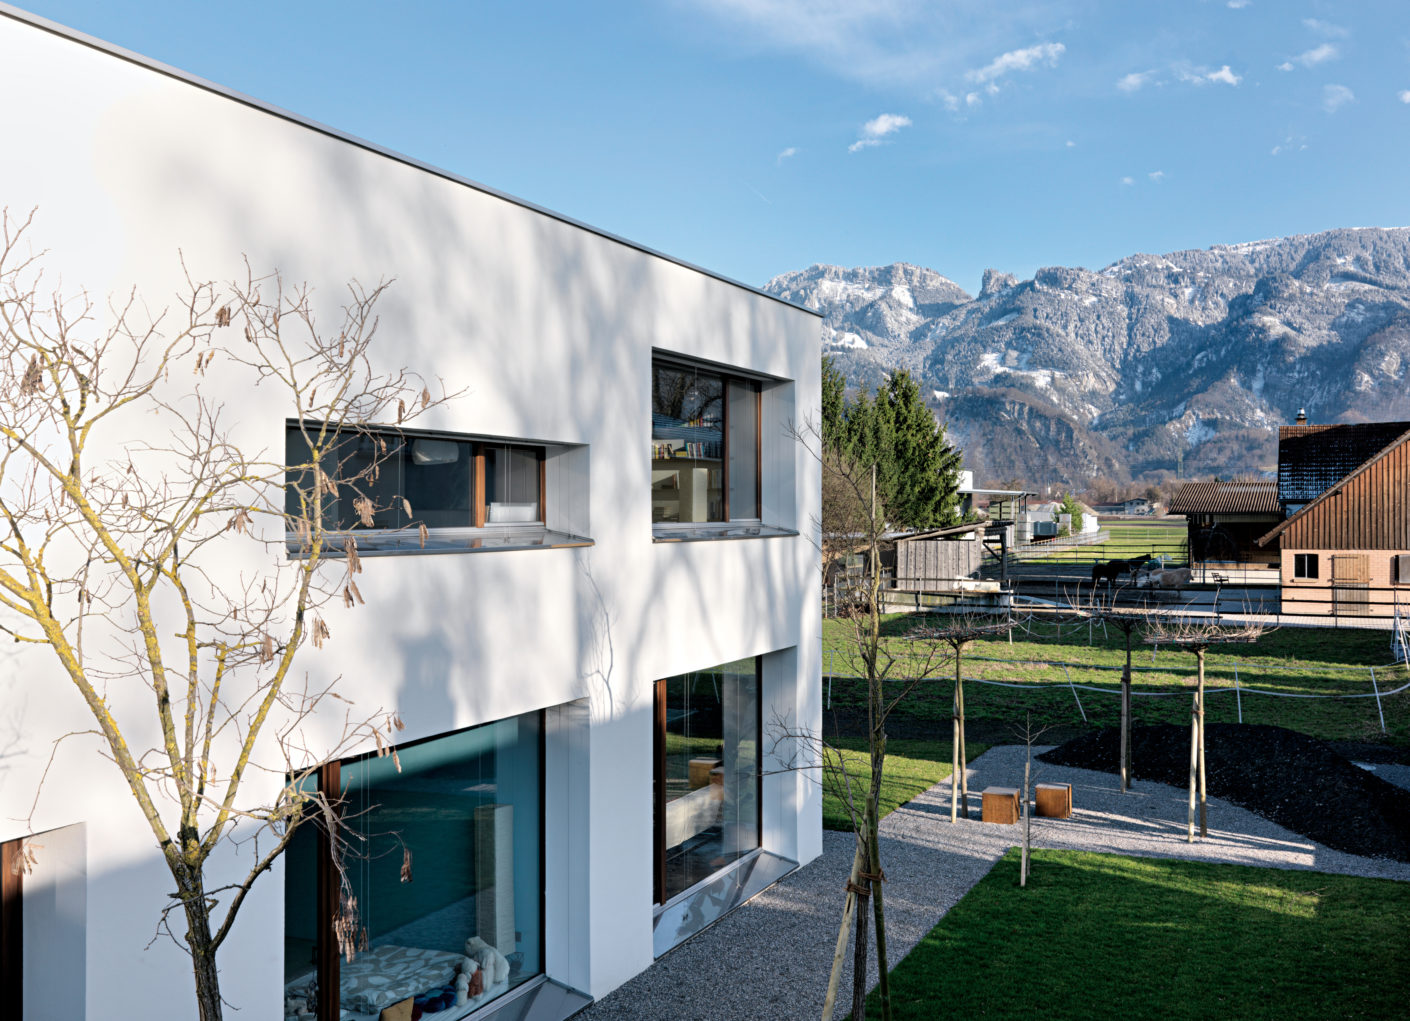 The architect Martin Gepp chose strict, narrow window formats - sometimes horizontally, sometimes vertically arranged, they frame the view of the mountains.